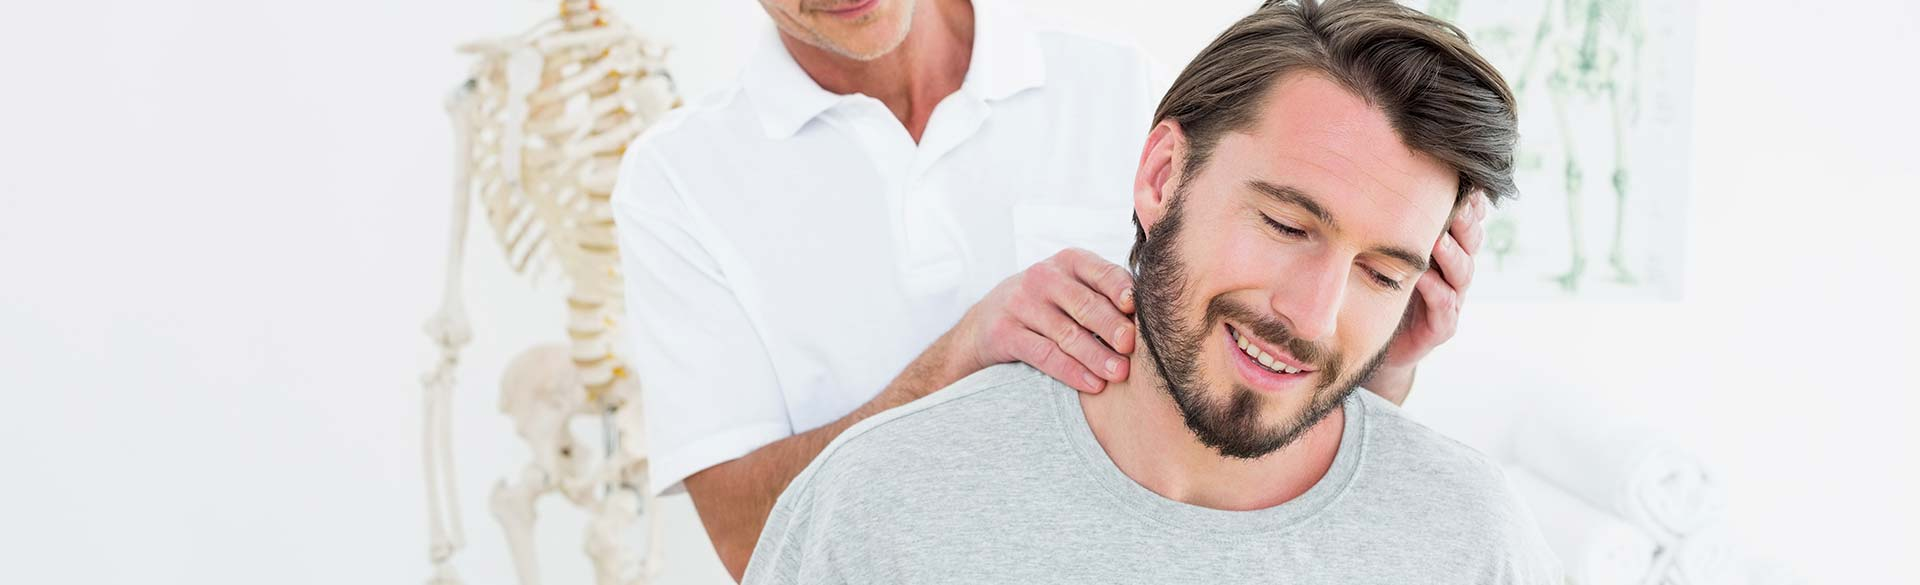 Best Calgary Chiropractor | National Spine Care | Calgary Downtown Chiropractor